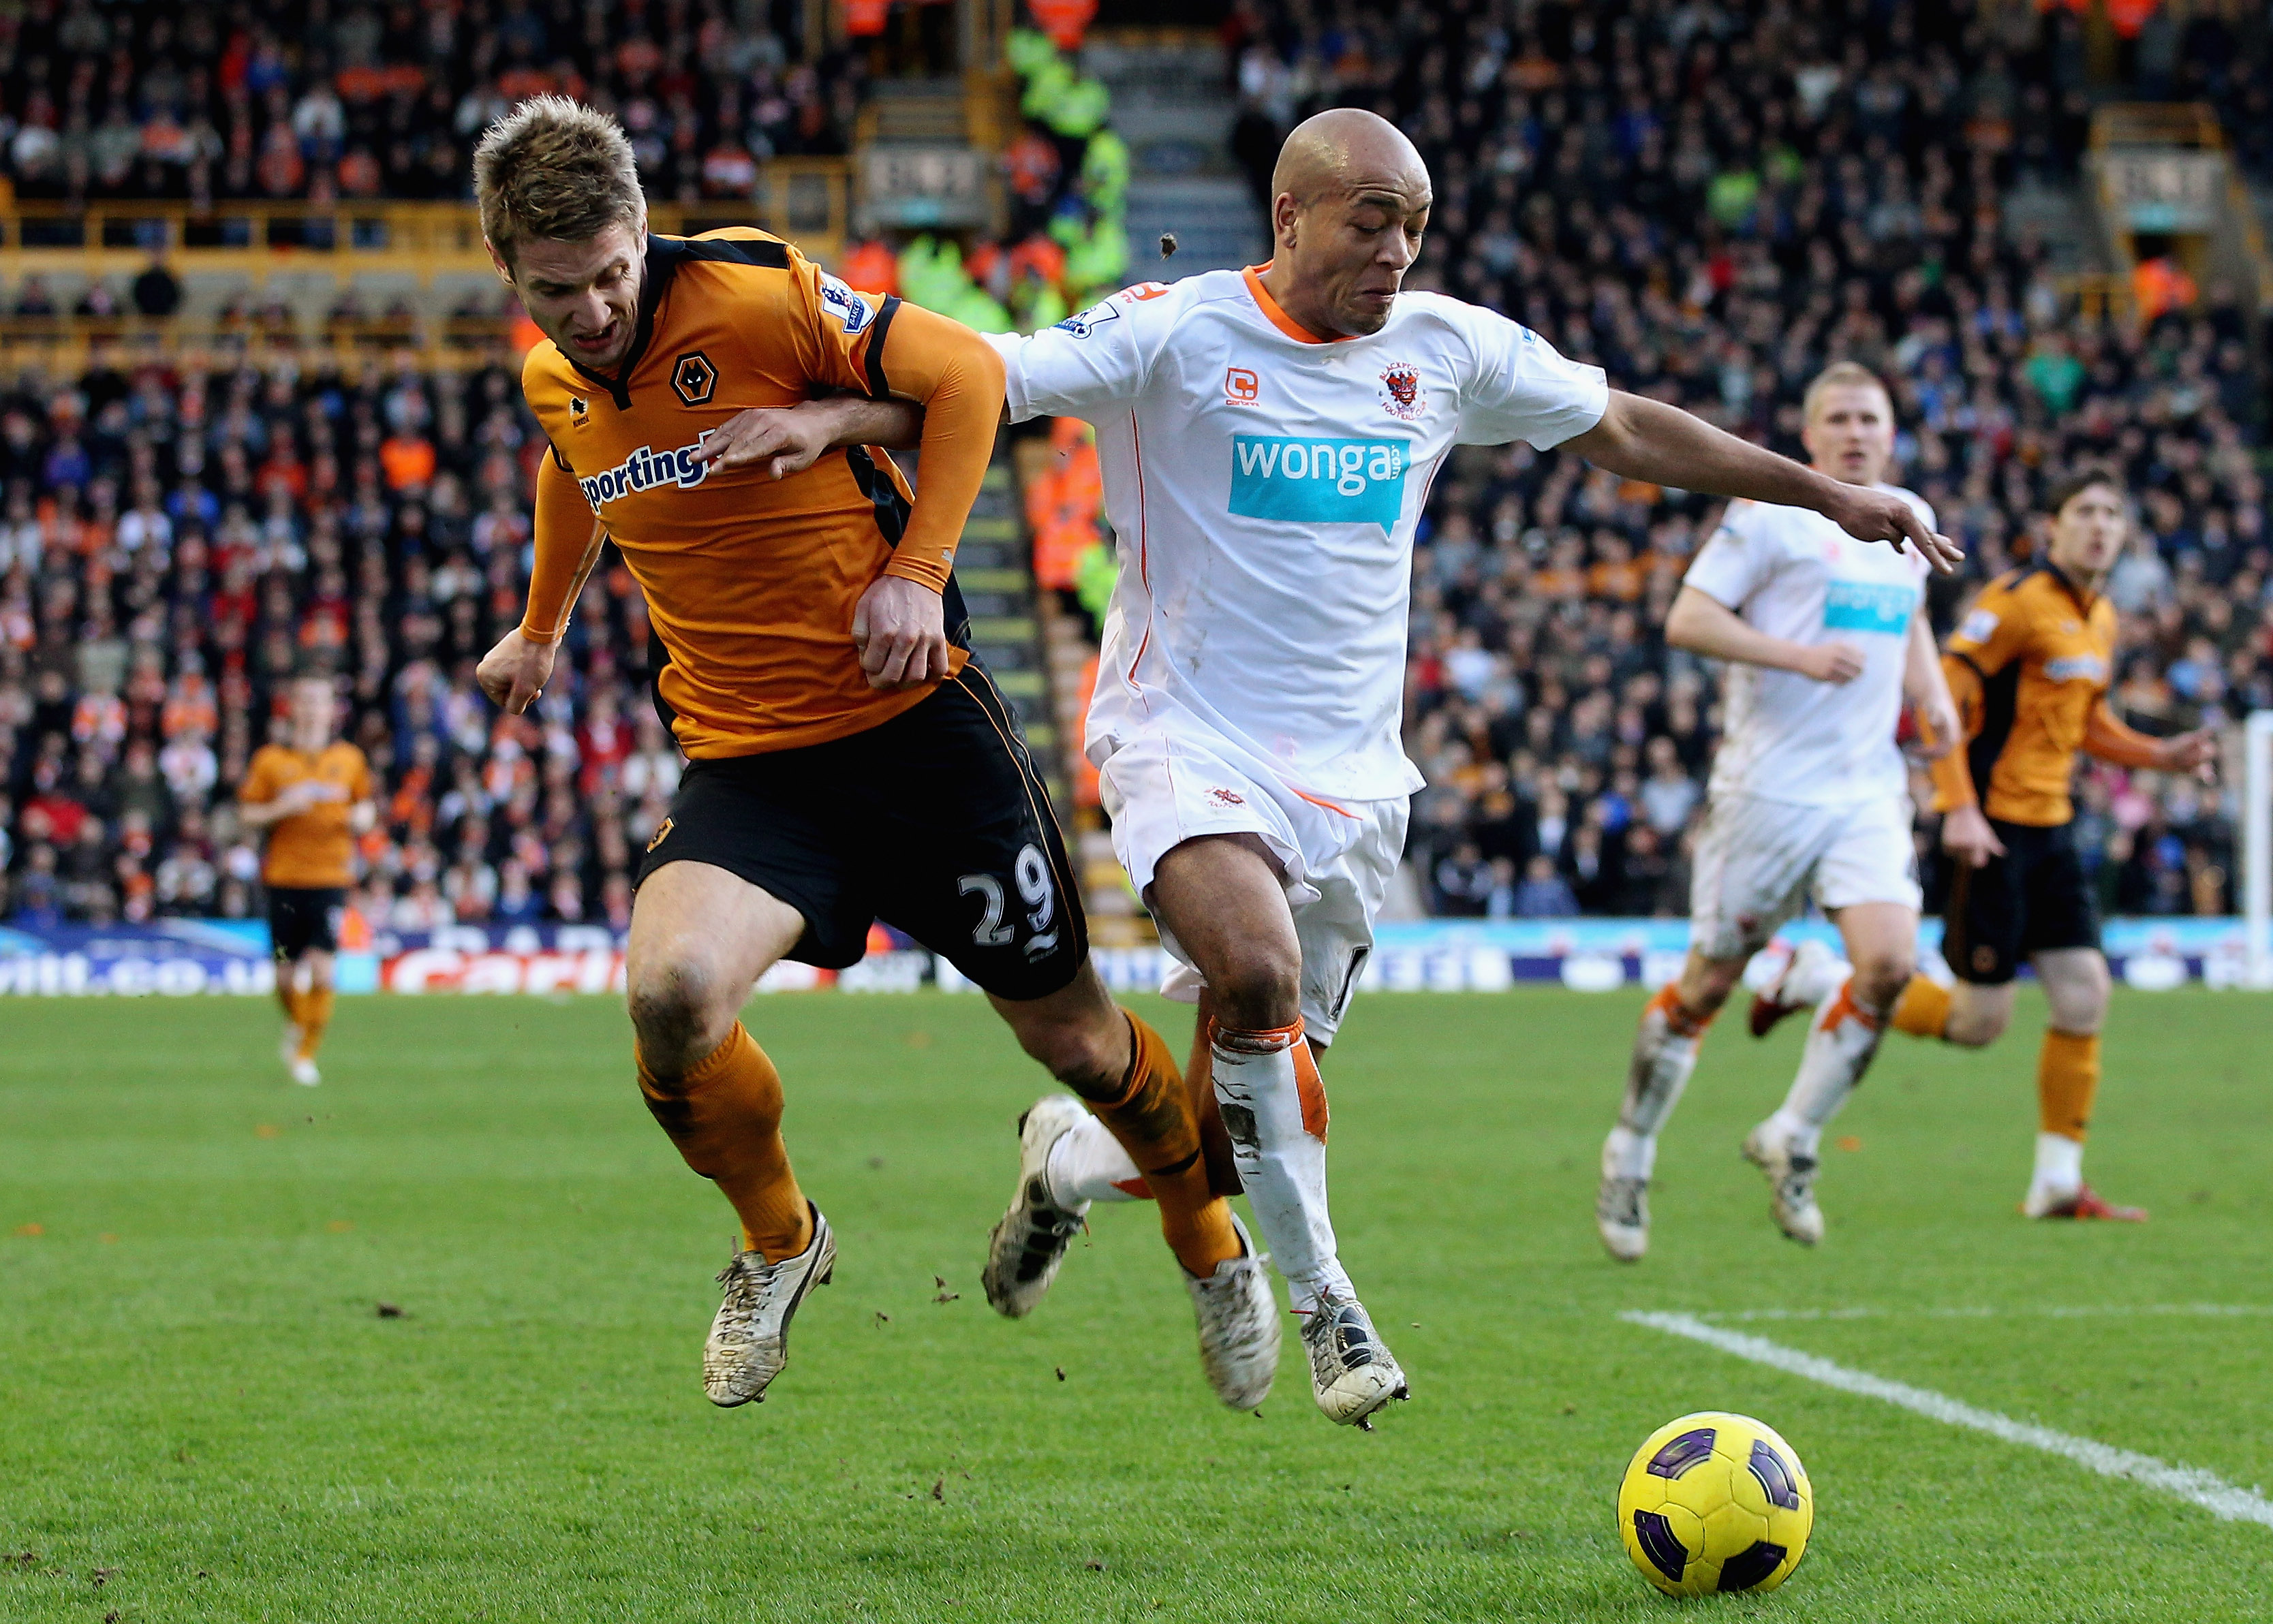 WOLVERHAMPTON, ENGLAND - FEBRUARY 26:  Kevin Doyle of Wolves (L) in action with Alex Baptiste of Blackpool during the Barclays Premier League match between Wolverhampton Wanderers and Blackpool at Molineux on February 26, 2011 in Wolverhampton, England.